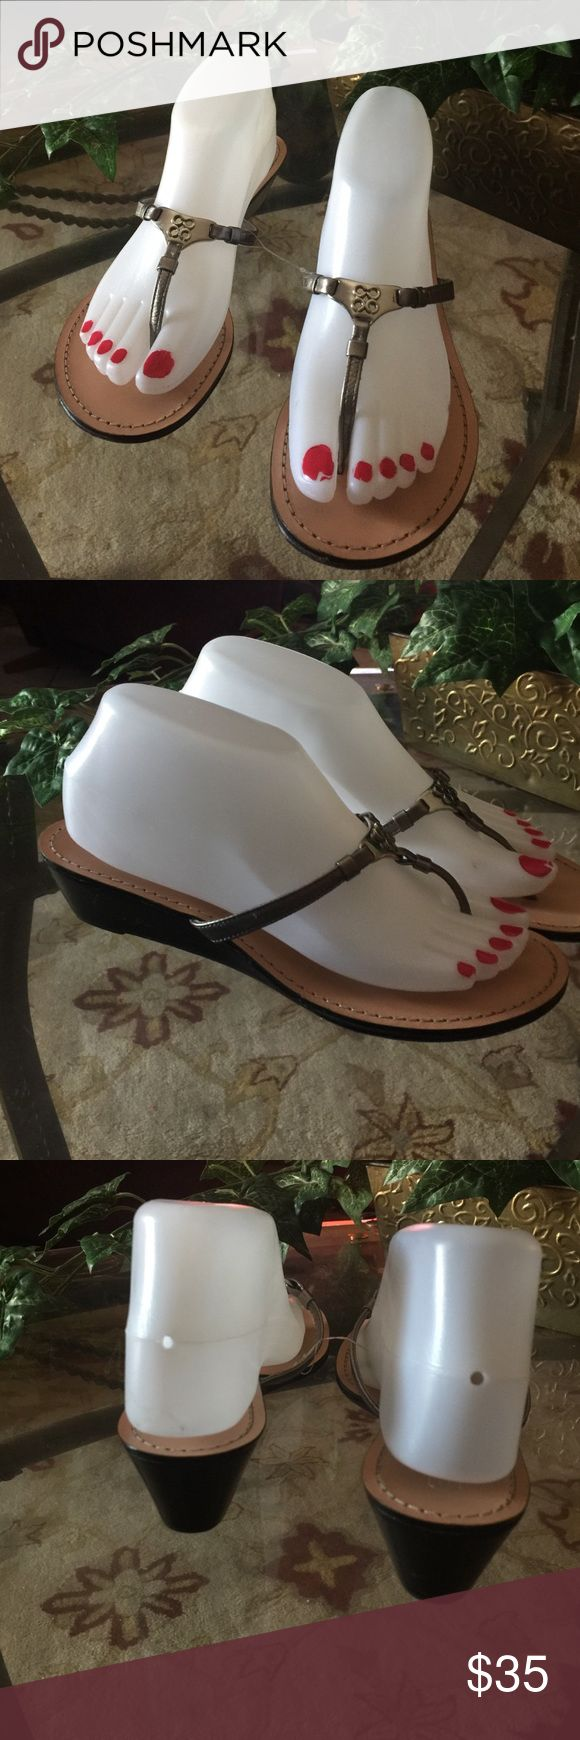 Coach pewter color size 7/2 In good condition size 71/2 Coach Shoes Sandals